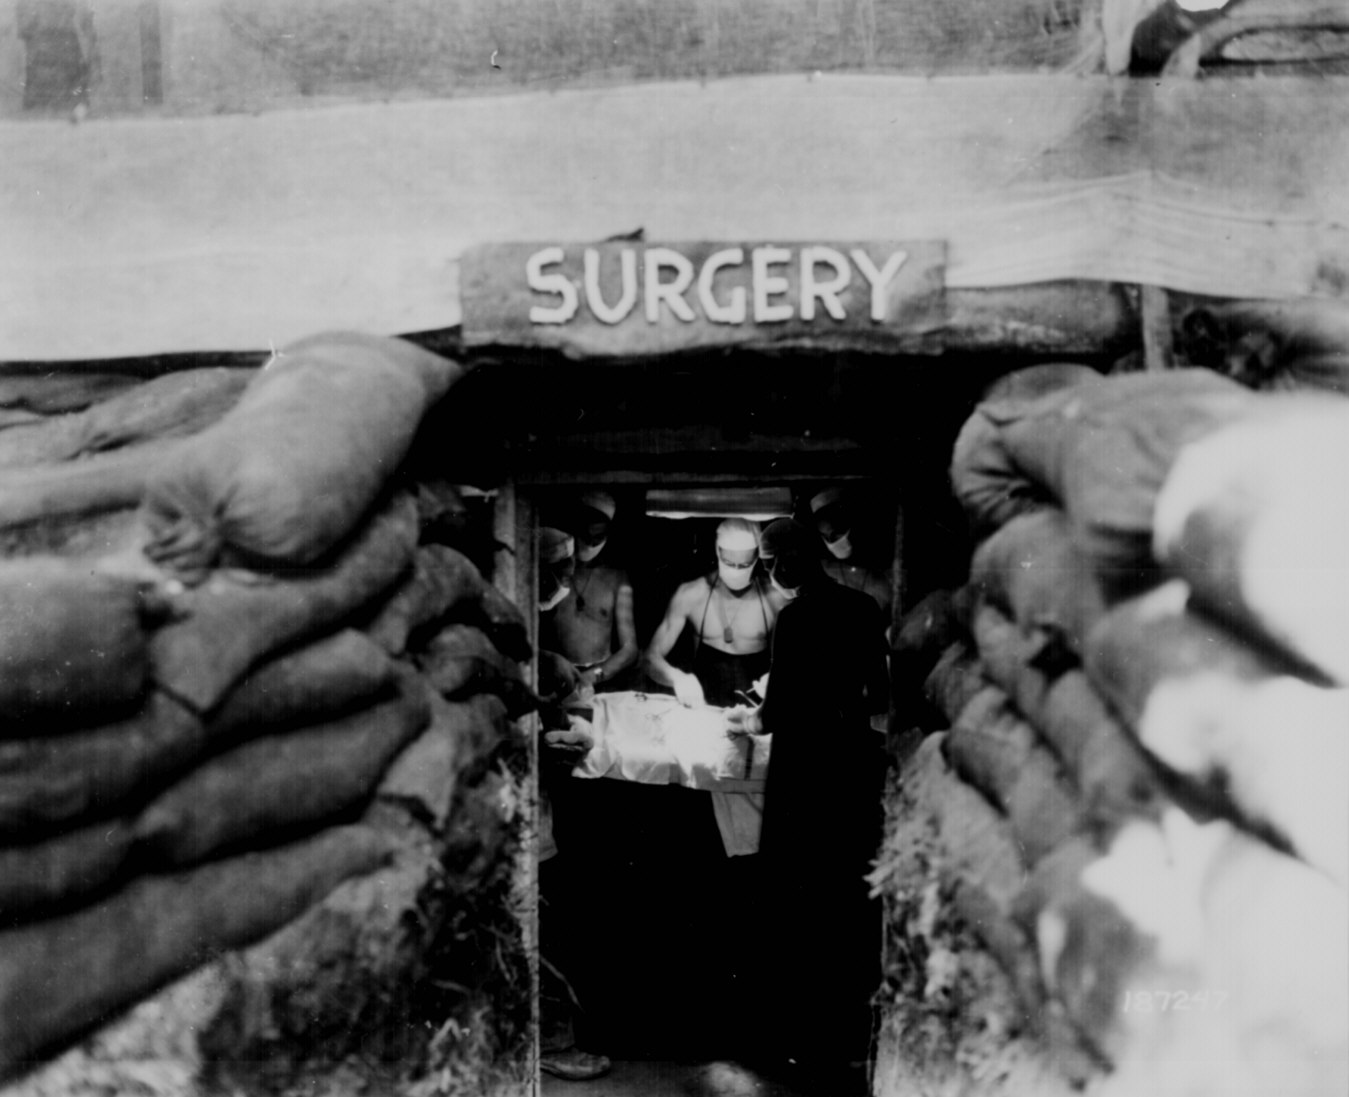 In an underground surgery room, behind the front lines on Bougainville, an American Army doctor operates on a U.S. soldier wounded by a Japanese sniper.  12-14-1943